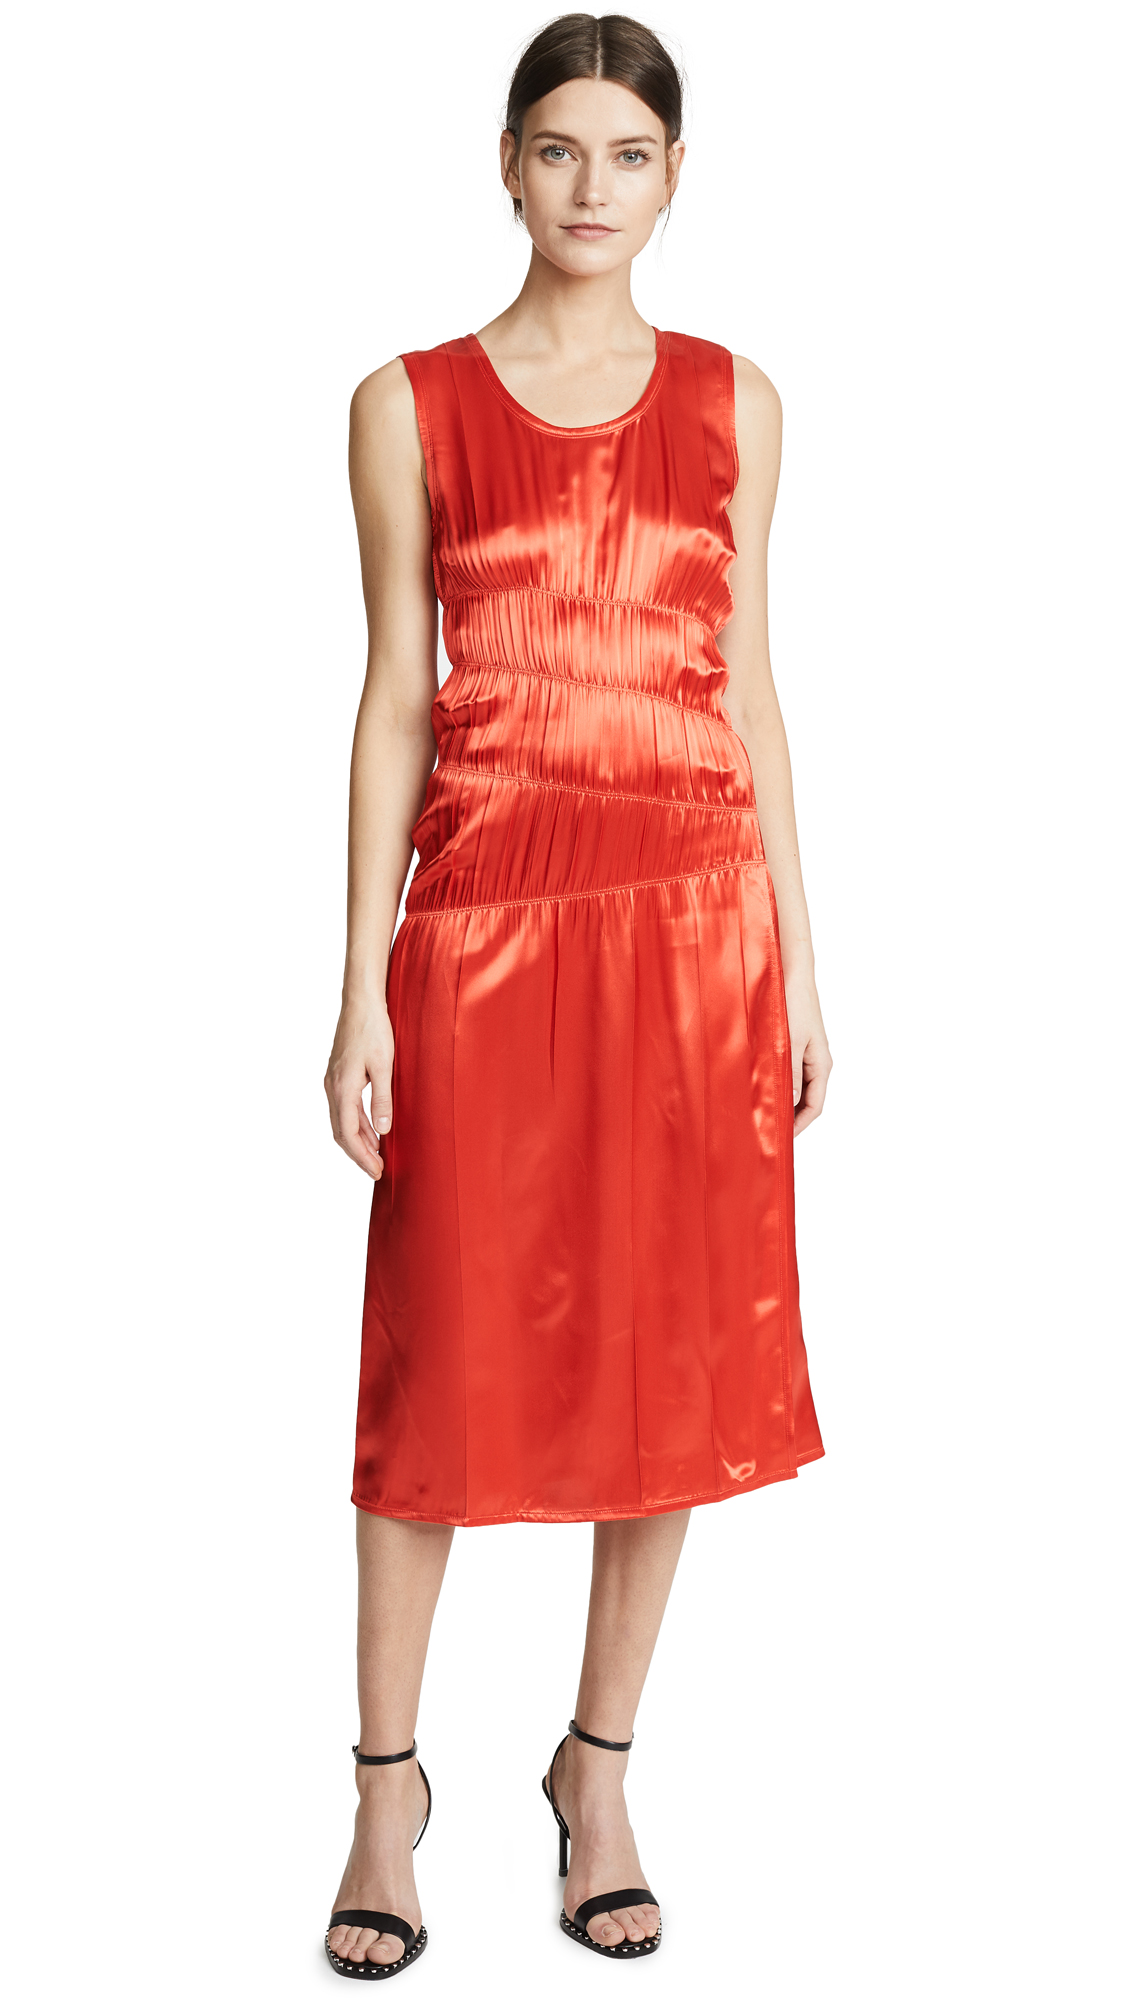 Helmut Lang Ruched Tank Dress - Volcano